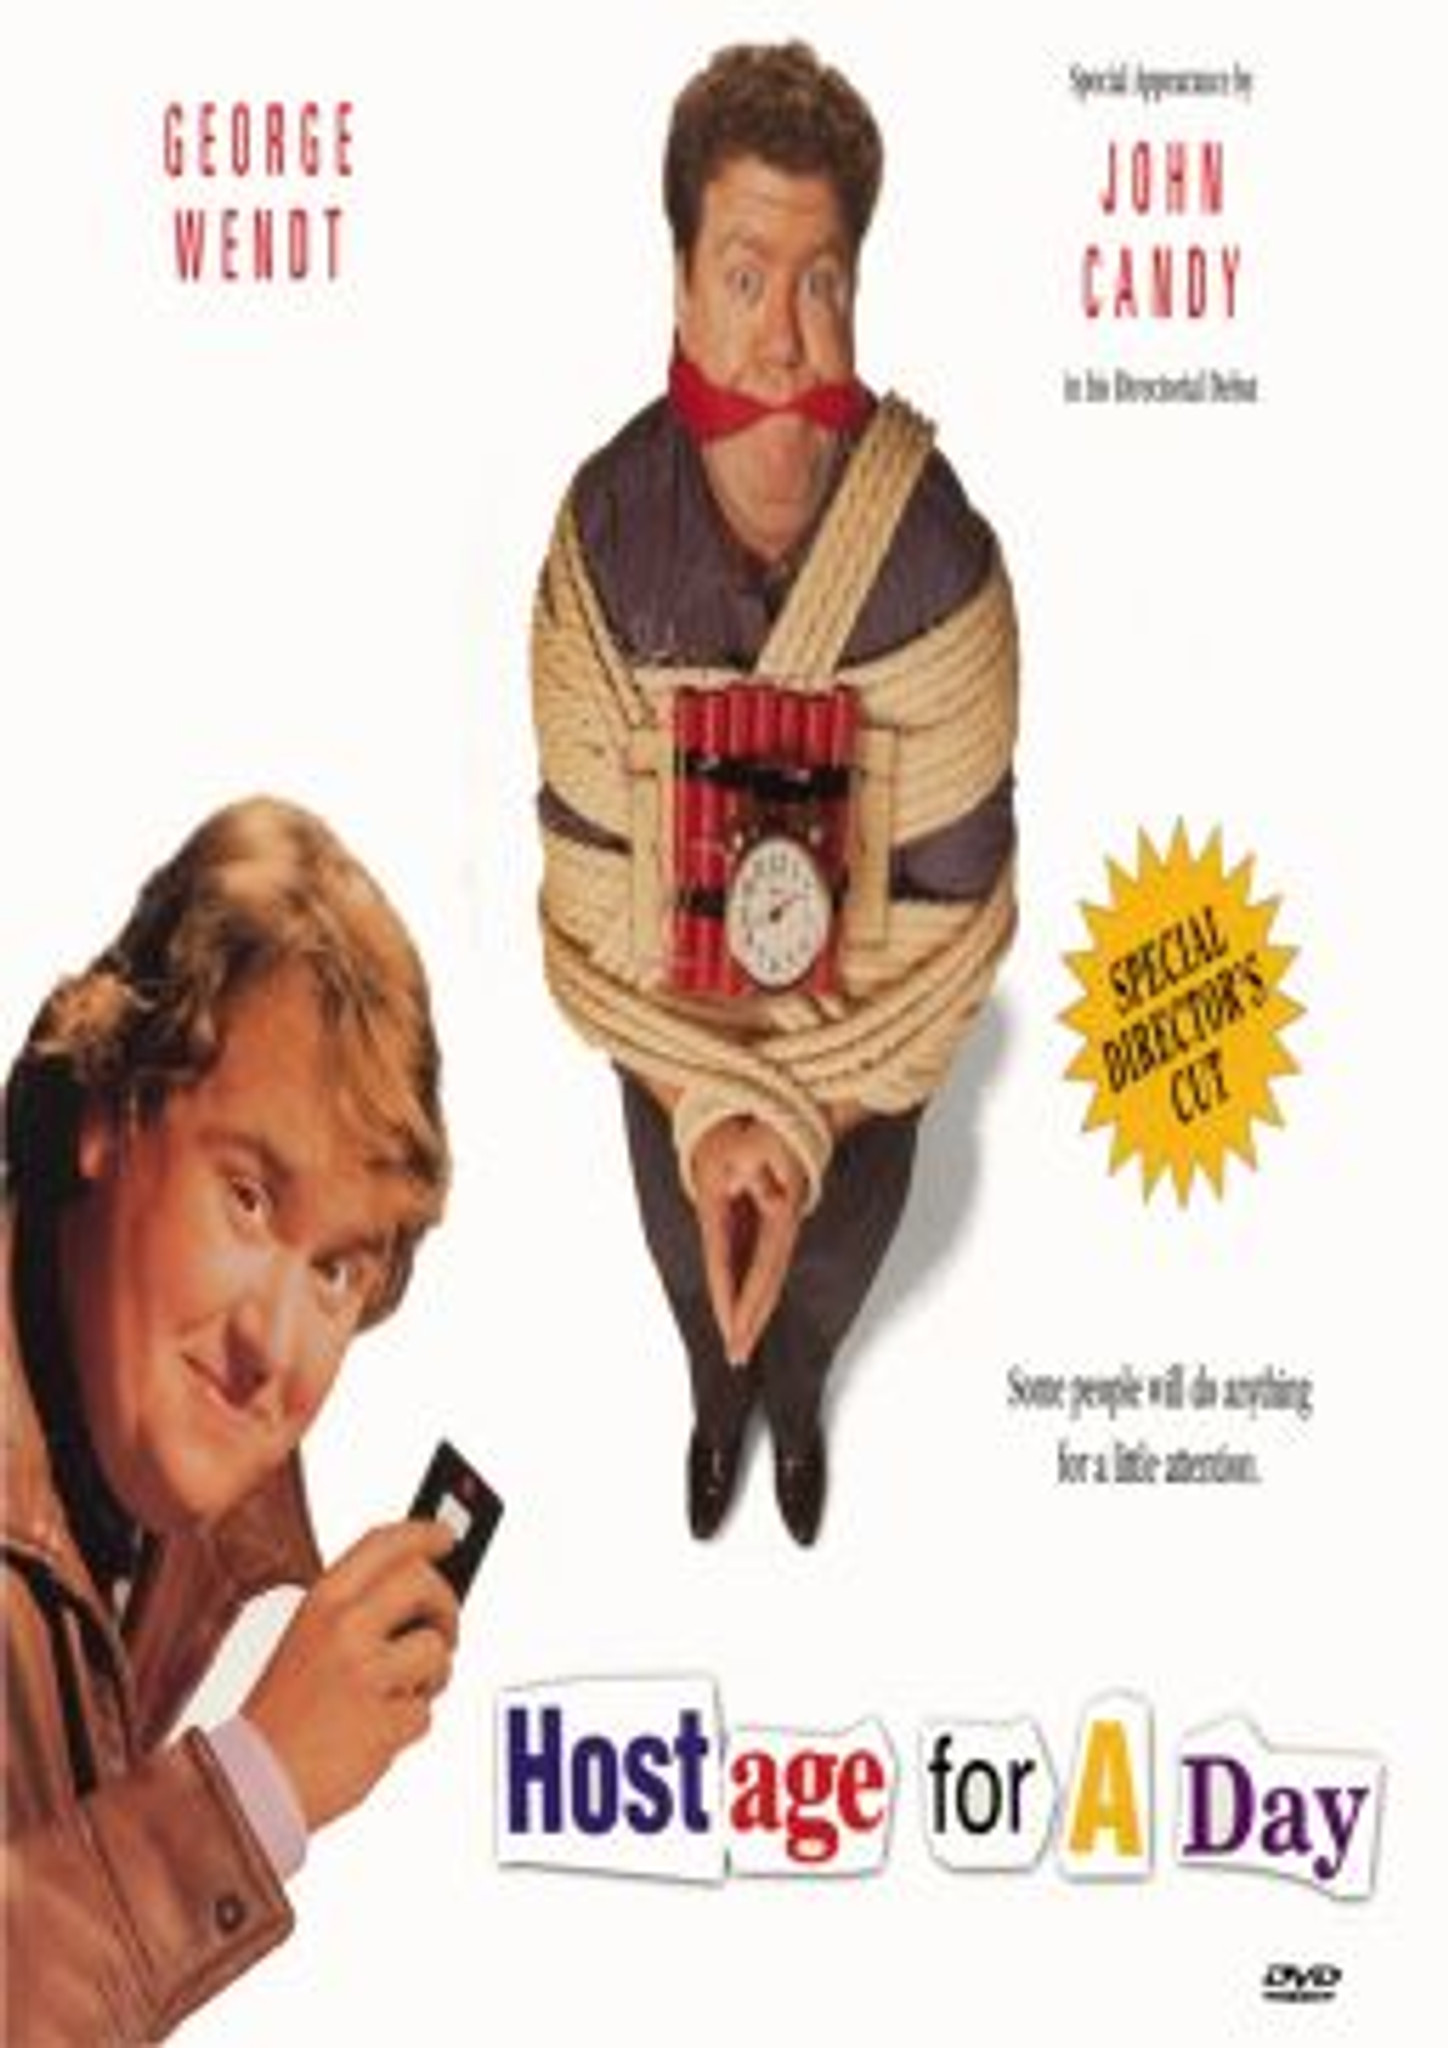 Hostage for A Day John Candy Dvd